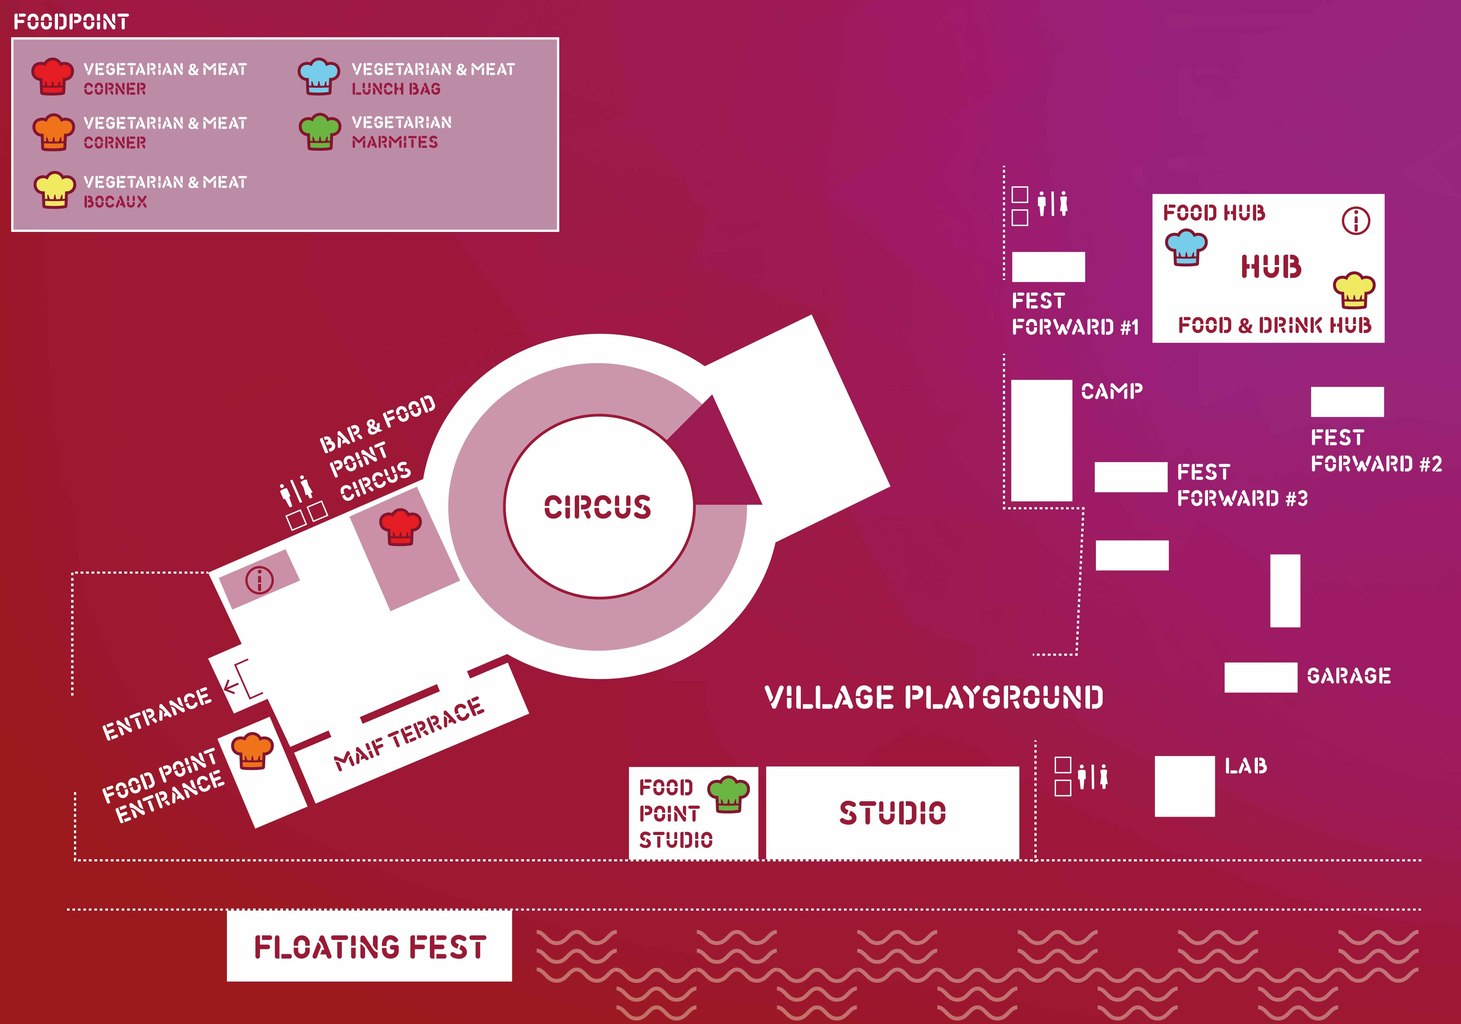 OuiShare Fest venue map